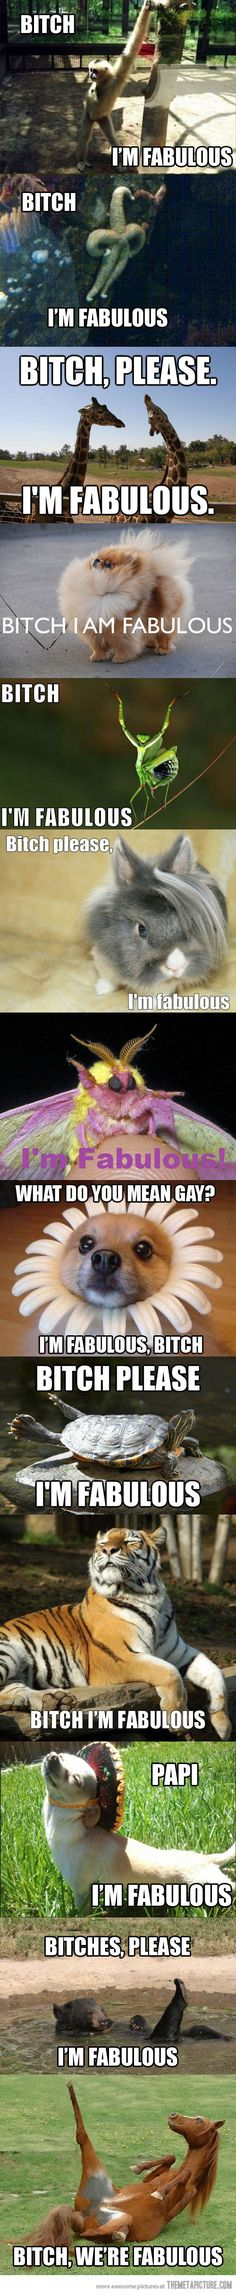 """Papi, I'm fabulous"" haha these are too cute and funny! Haha Funny, Funny Cute, Funny Memes, Hilarious, Funny Stuff, Humor Animal, Funny Animals, Cute Animals, Im Fabulous"